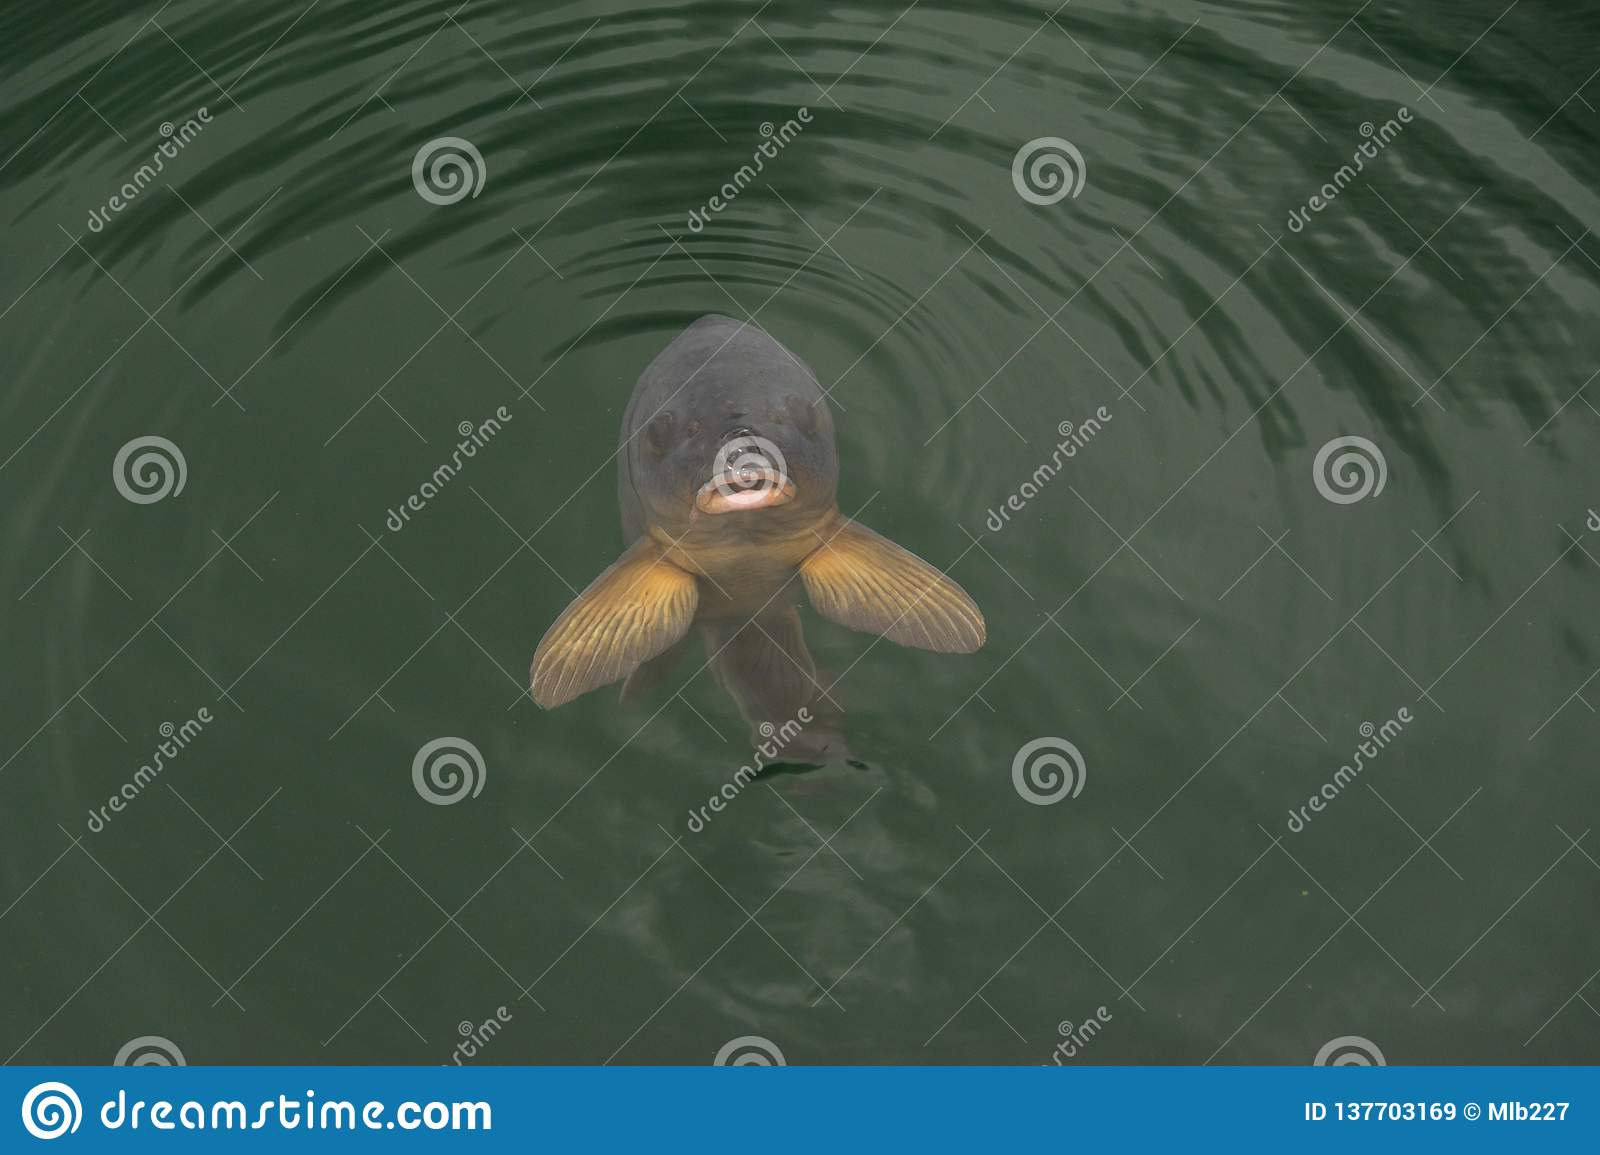 A lonely carp coming up to say hello